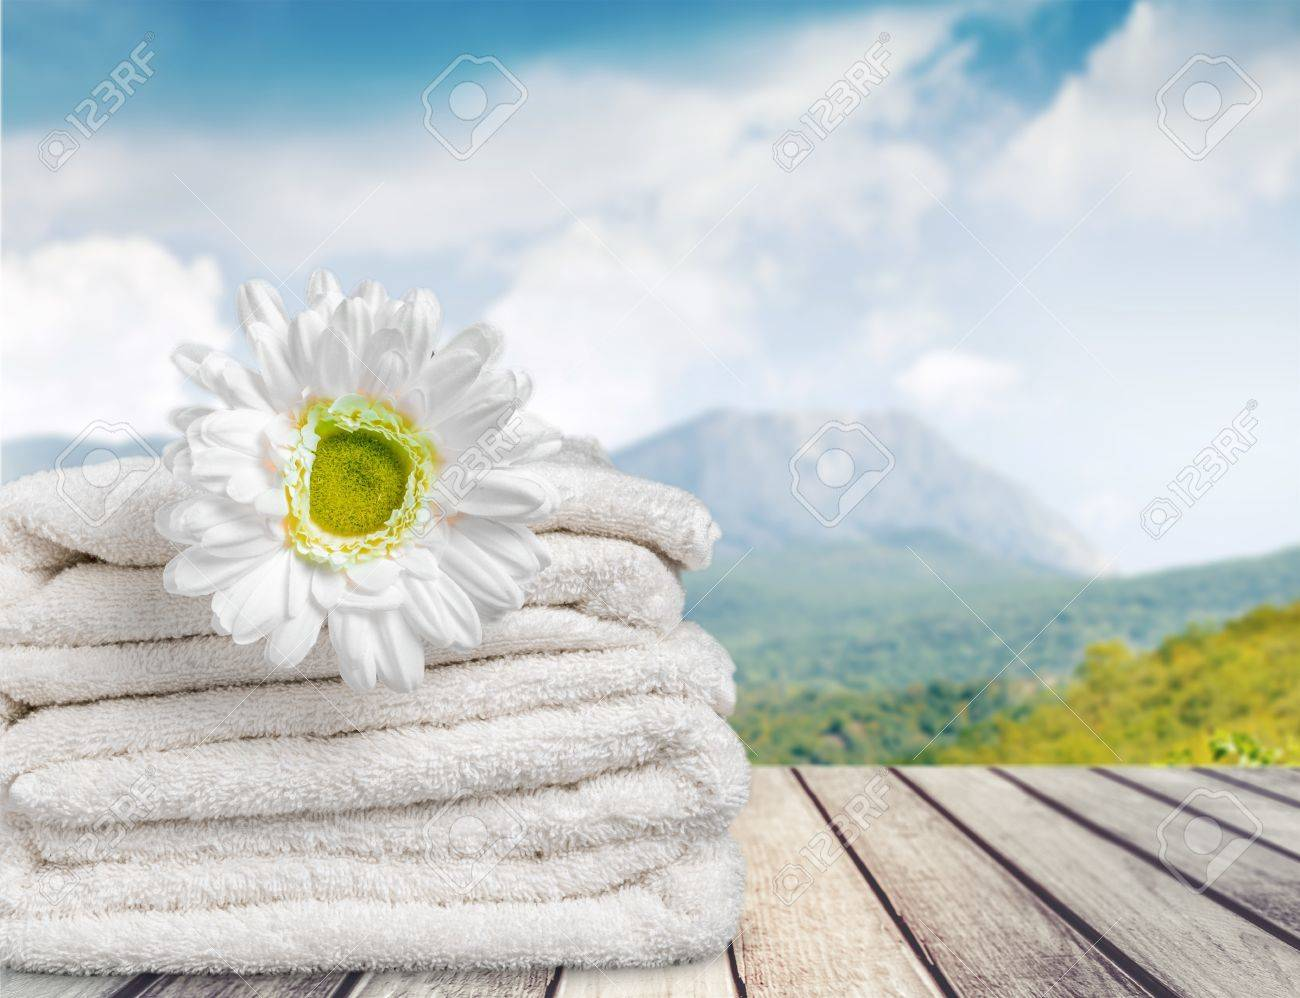 Laundry. Stock Photo - 52132390